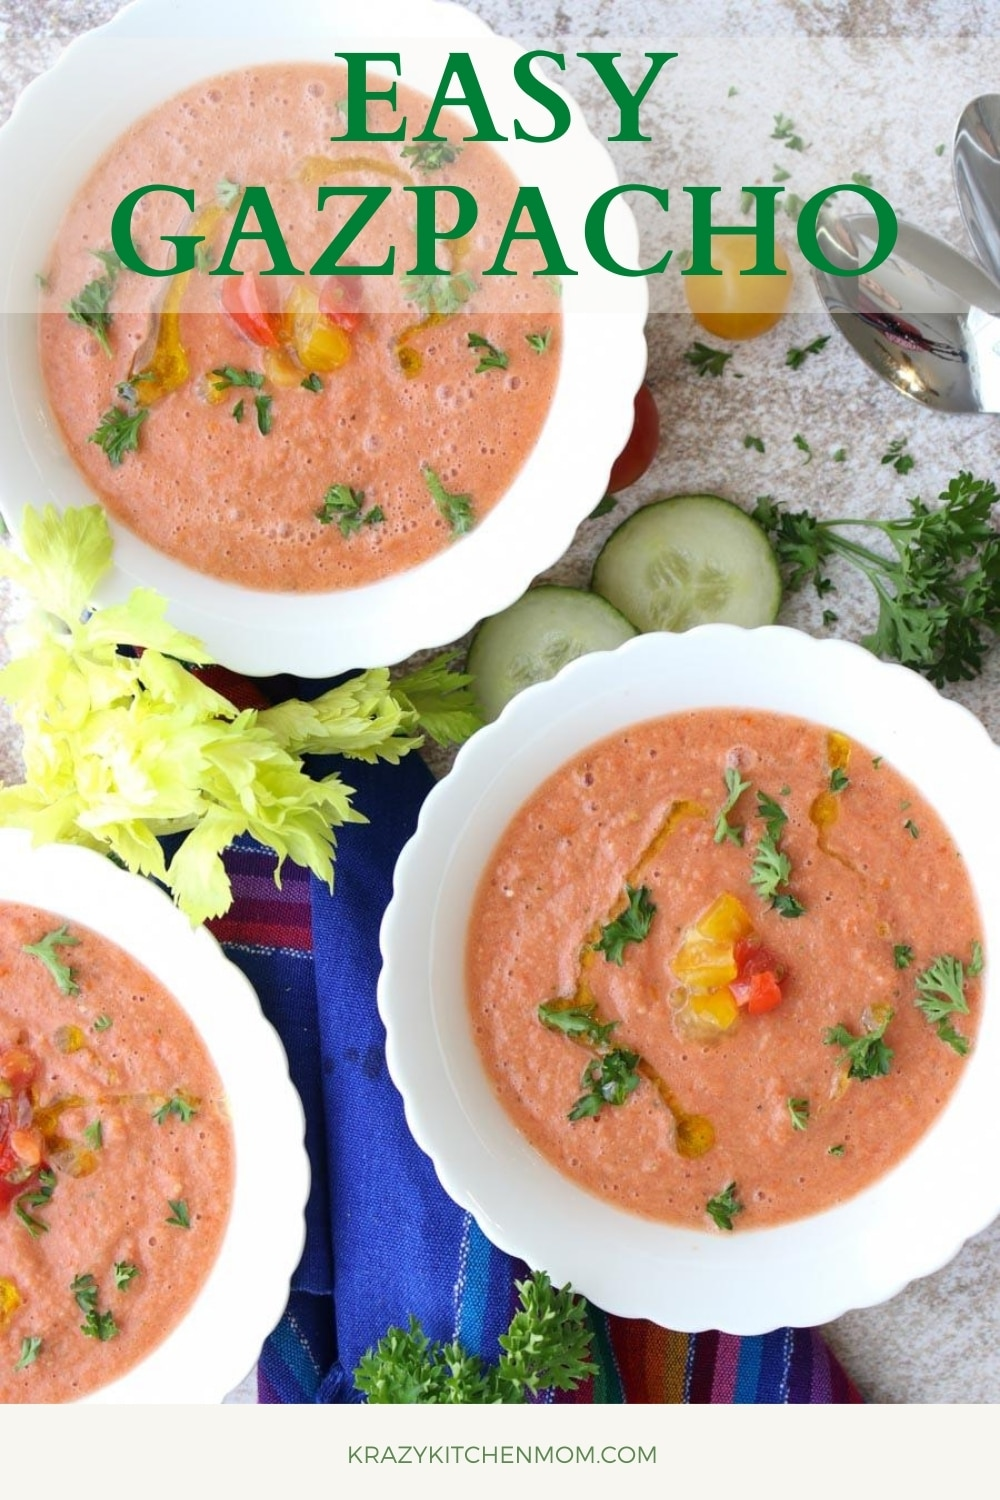 Ripe summer tomatoes are everywhere this time of the year. Grab your favorites and make my easy gazpacho recipes in minutes! It's fresh, cool, creamy, and simply a flavor explosion!  via @krazykitchenmom